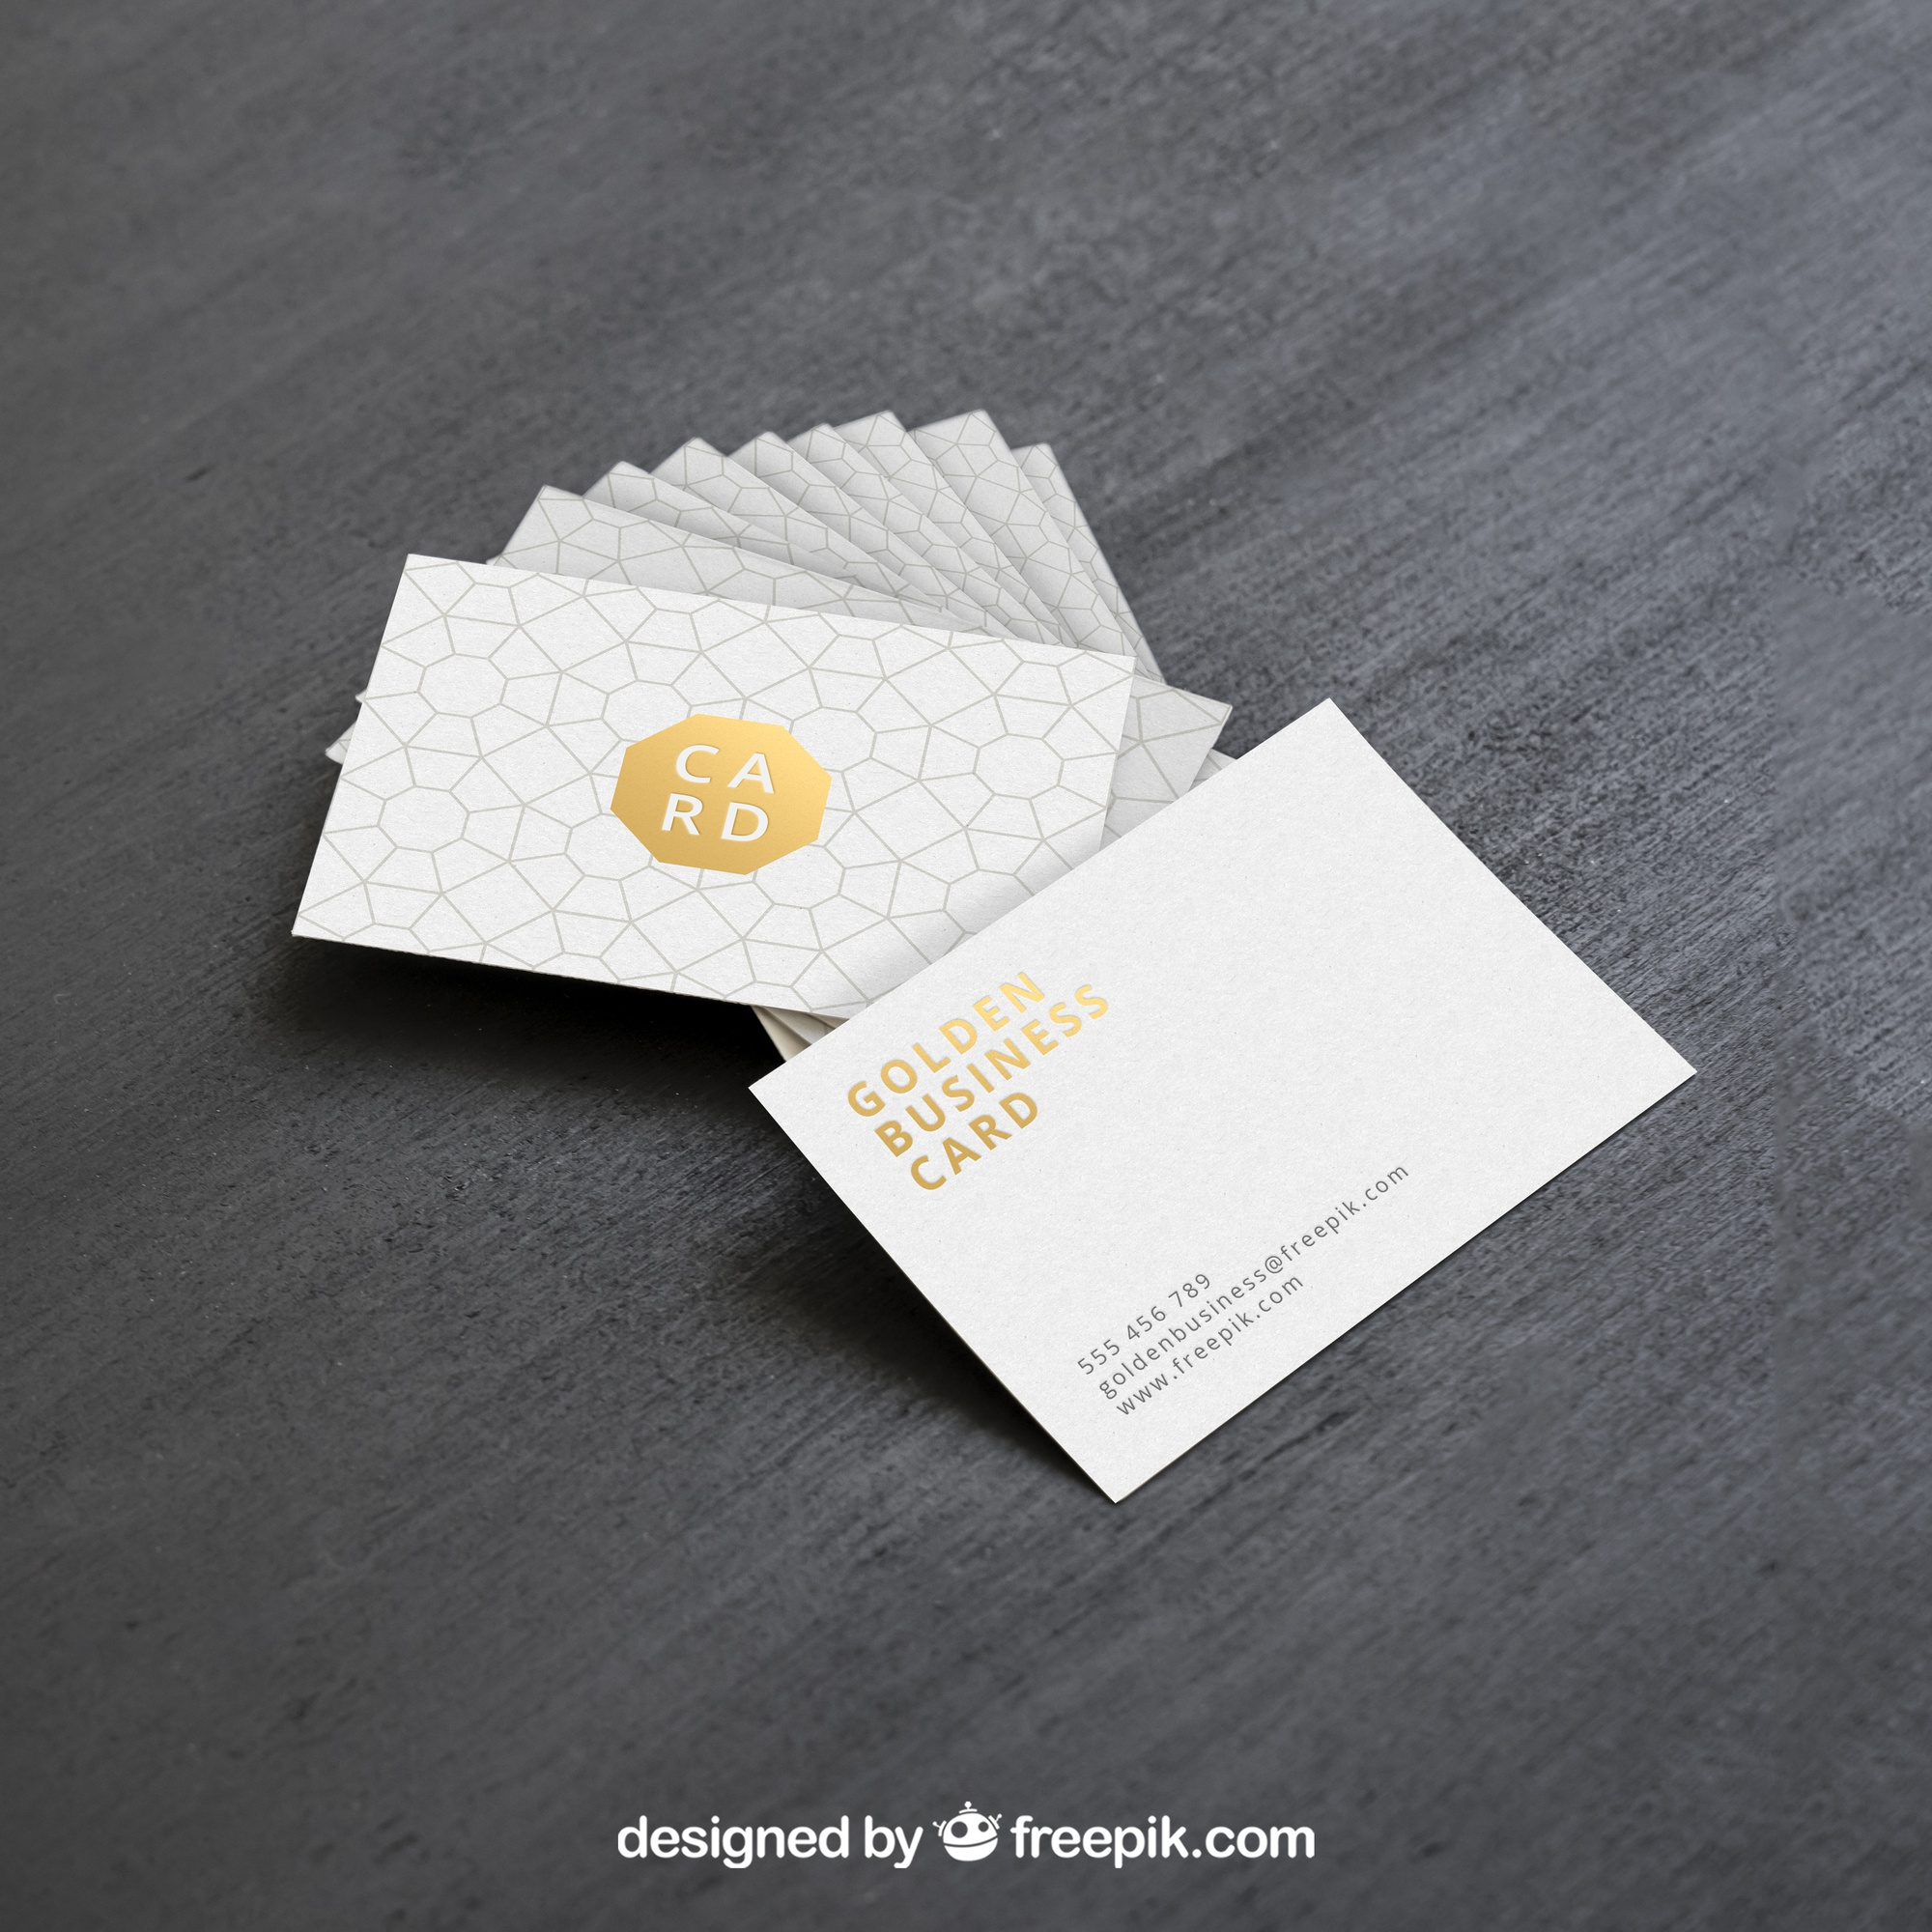 Cards psd 2700 free psd files golden business card mock up cheaphphosting